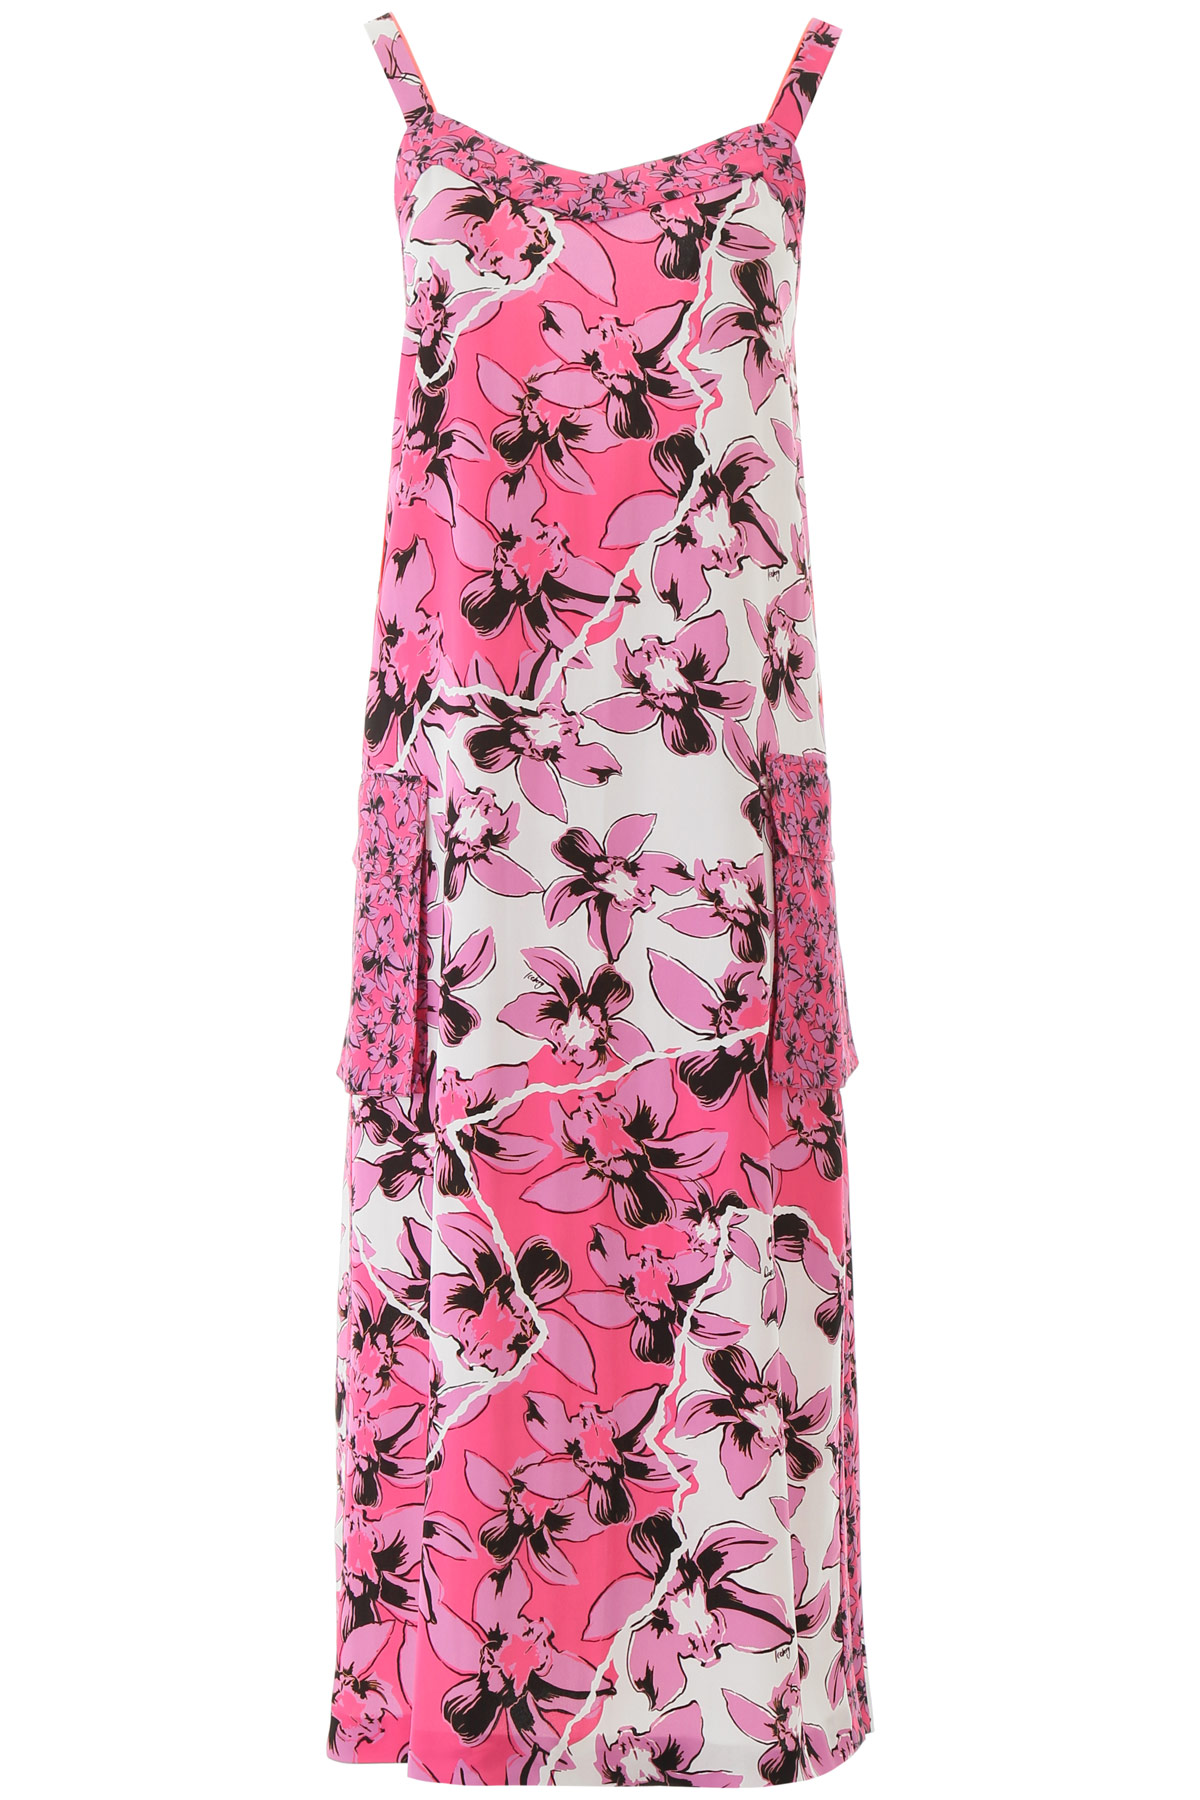 ICEBERG FLORAL DRESS 40 Pink, White, Black